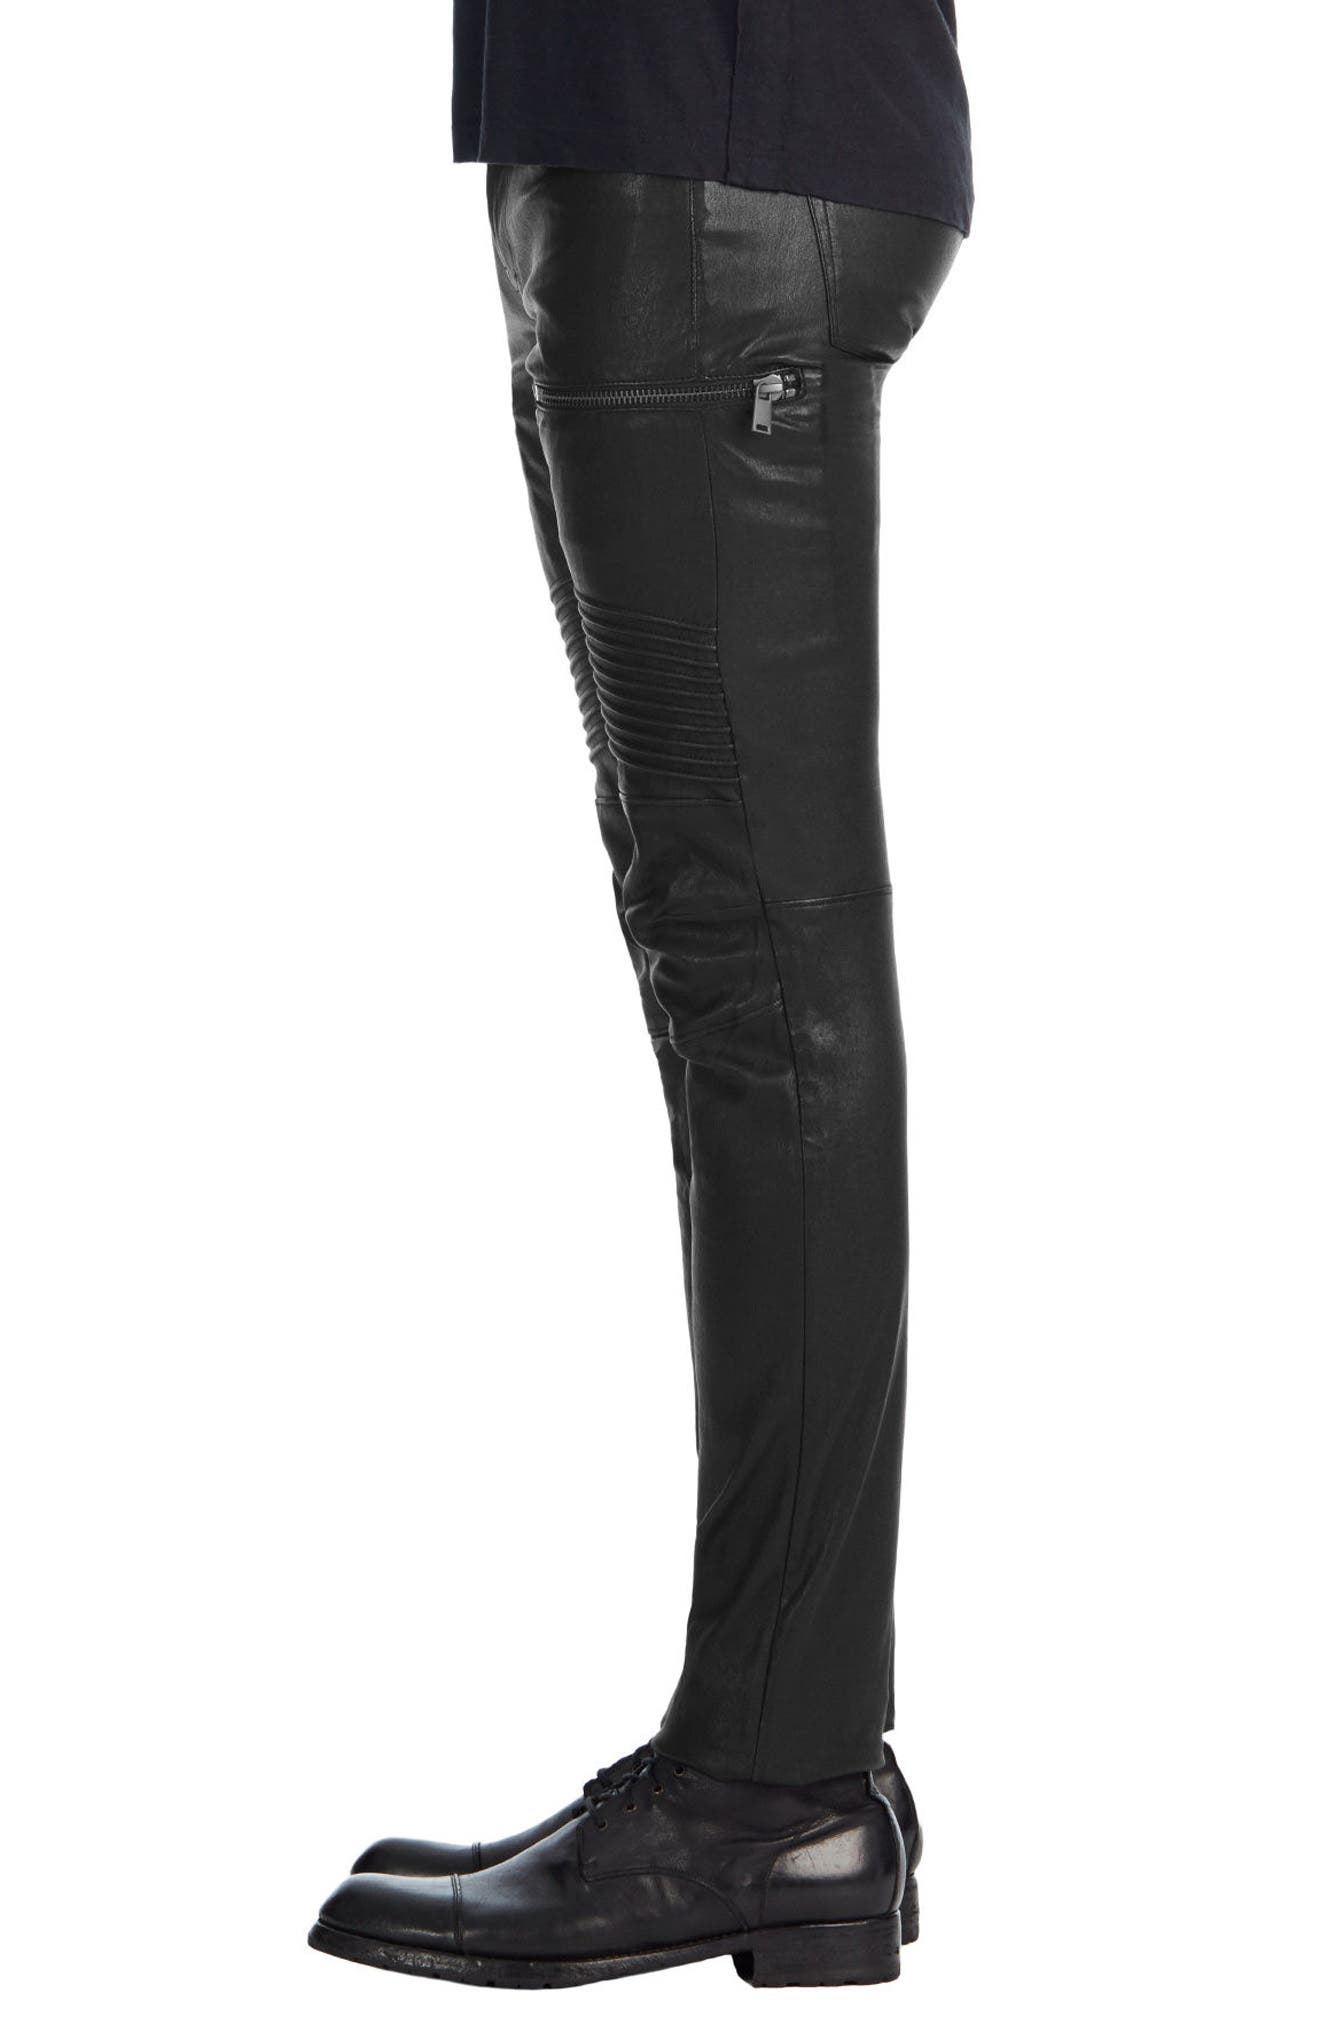 Acrux Skinny Fit Moto Leather Pants,                             Alternate thumbnail 3, color,                             001